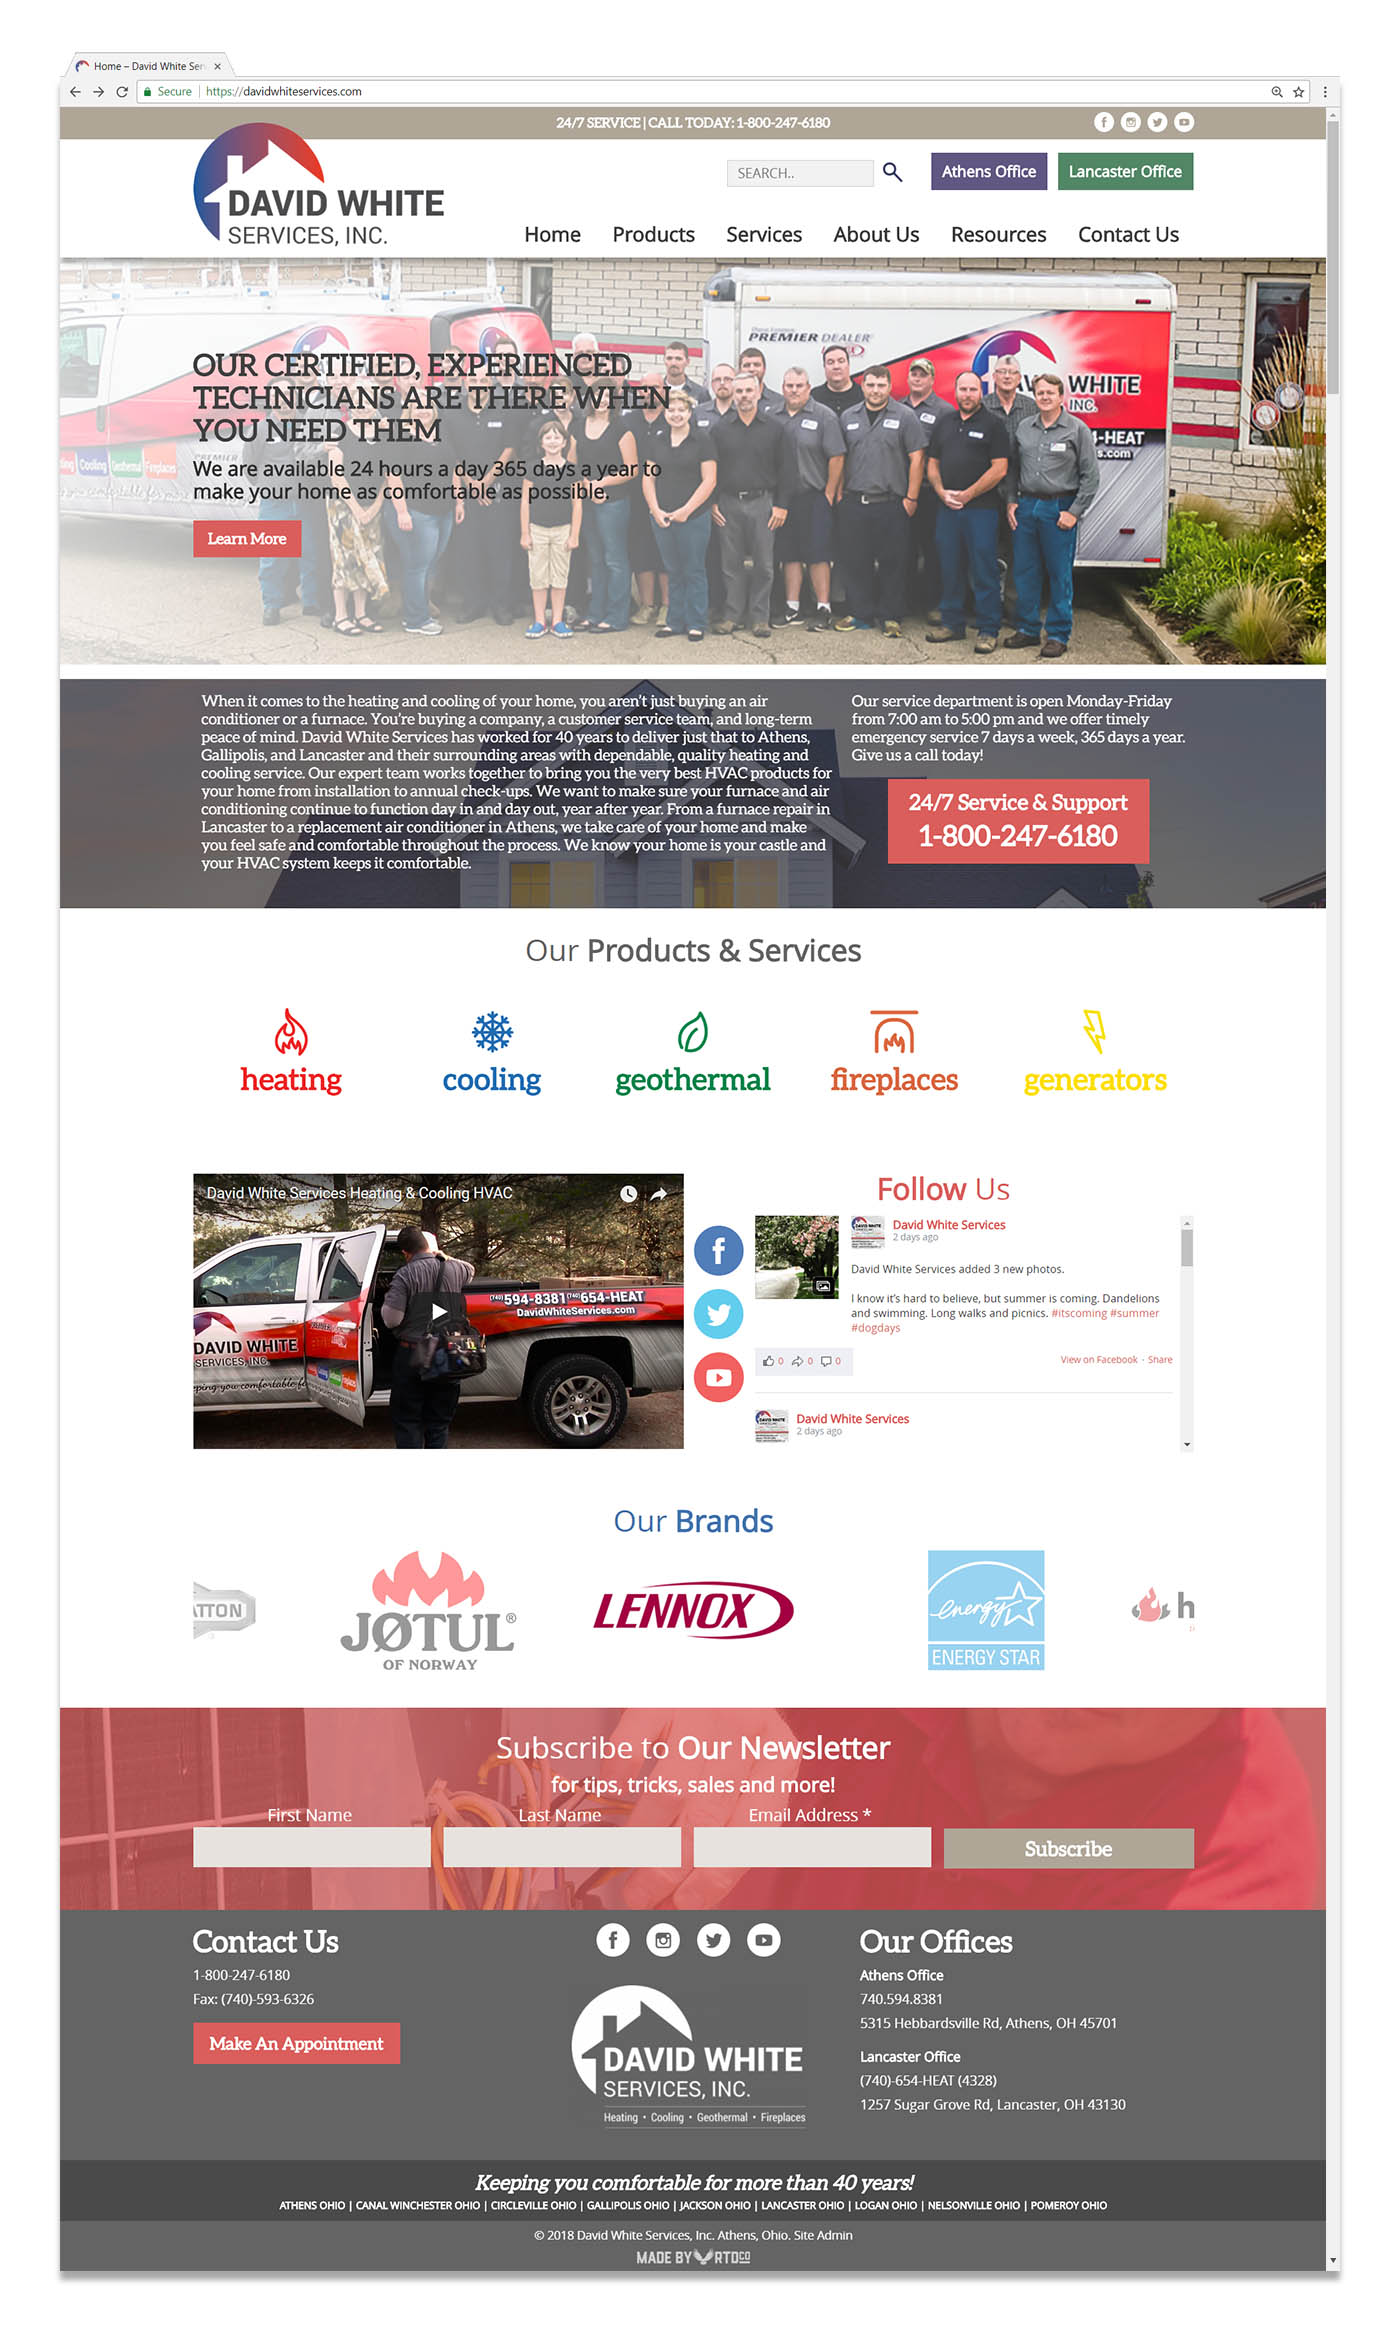 David White Services Heating and Cooling Athens Ohio website design mockup by Red Tail Design